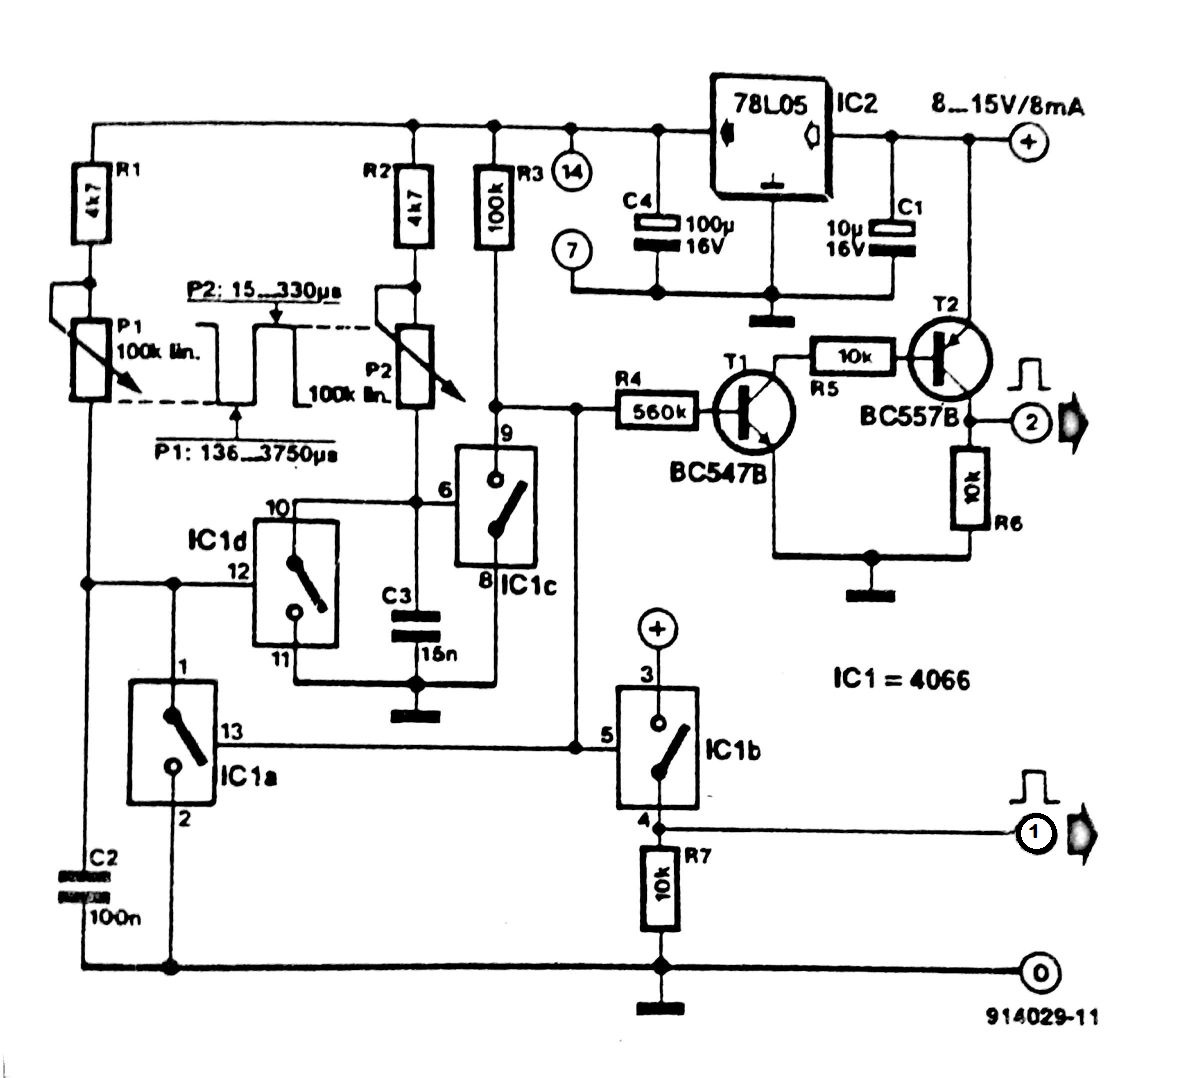 tpi furnace wiring diagram raa zaislunamai uk Computer Modules Diagram taskmaster 5100 series heater wiring diagram electric wiring diagram and fuse box 350 tpi injection wiring harness tpi wiring harness and puter